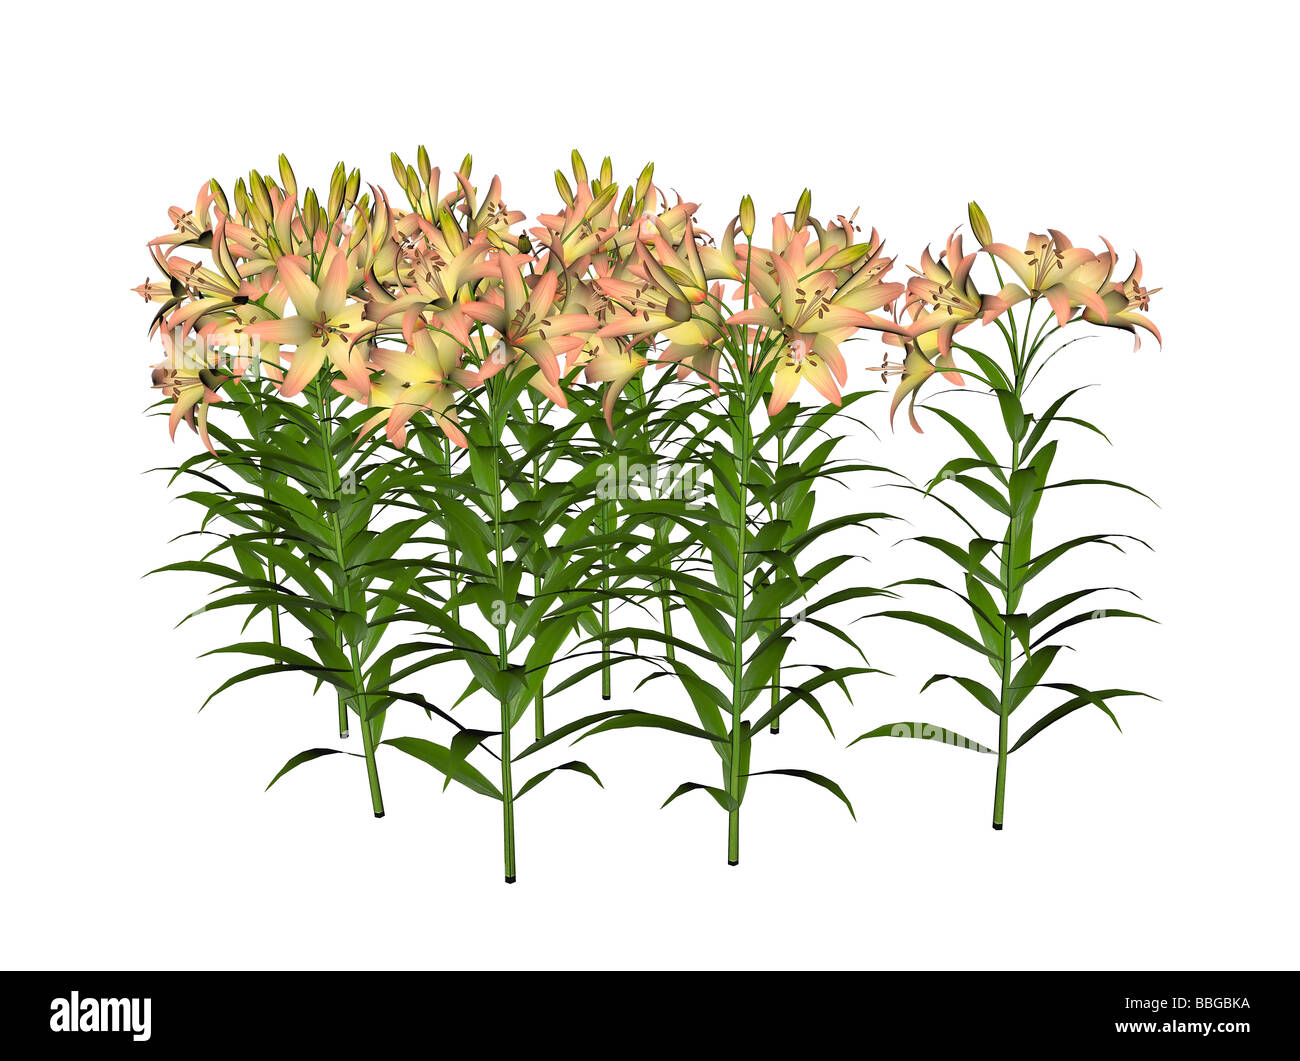 Illustration of an asiatic lily raytraced image - Stock Image